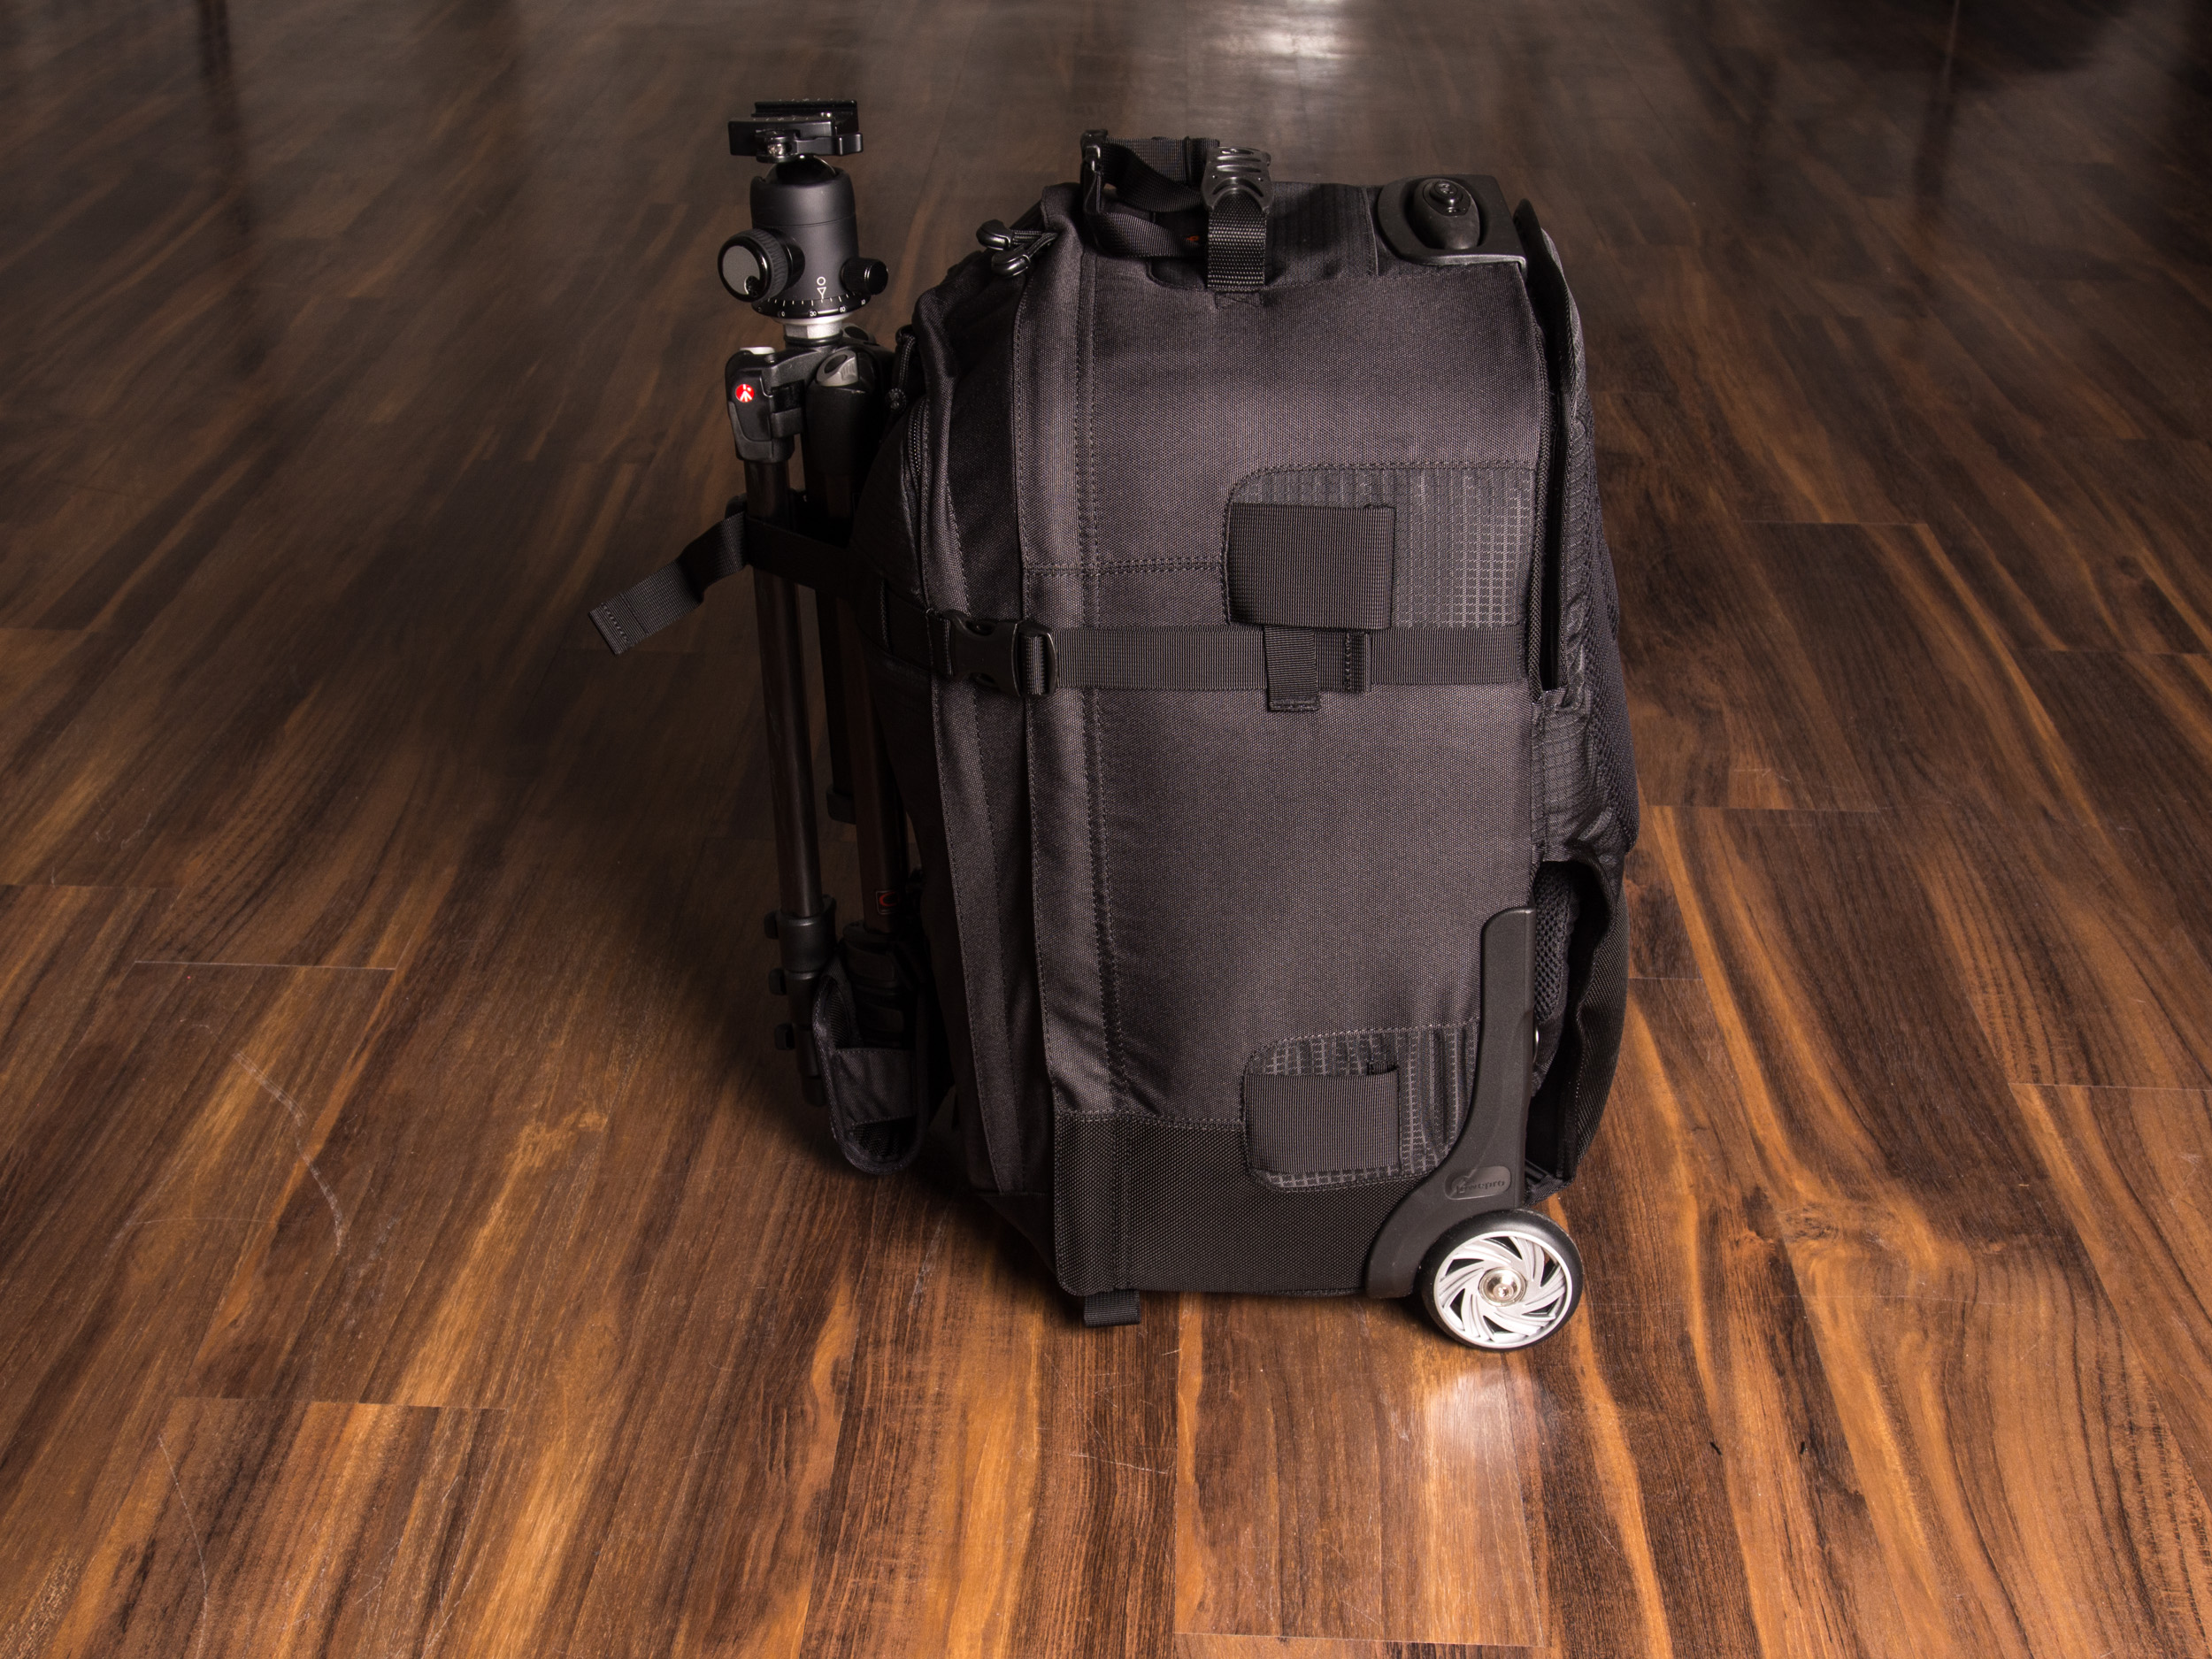 test lowepro pro runner x450 aw trolleyrucksack. Black Bedroom Furniture Sets. Home Design Ideas